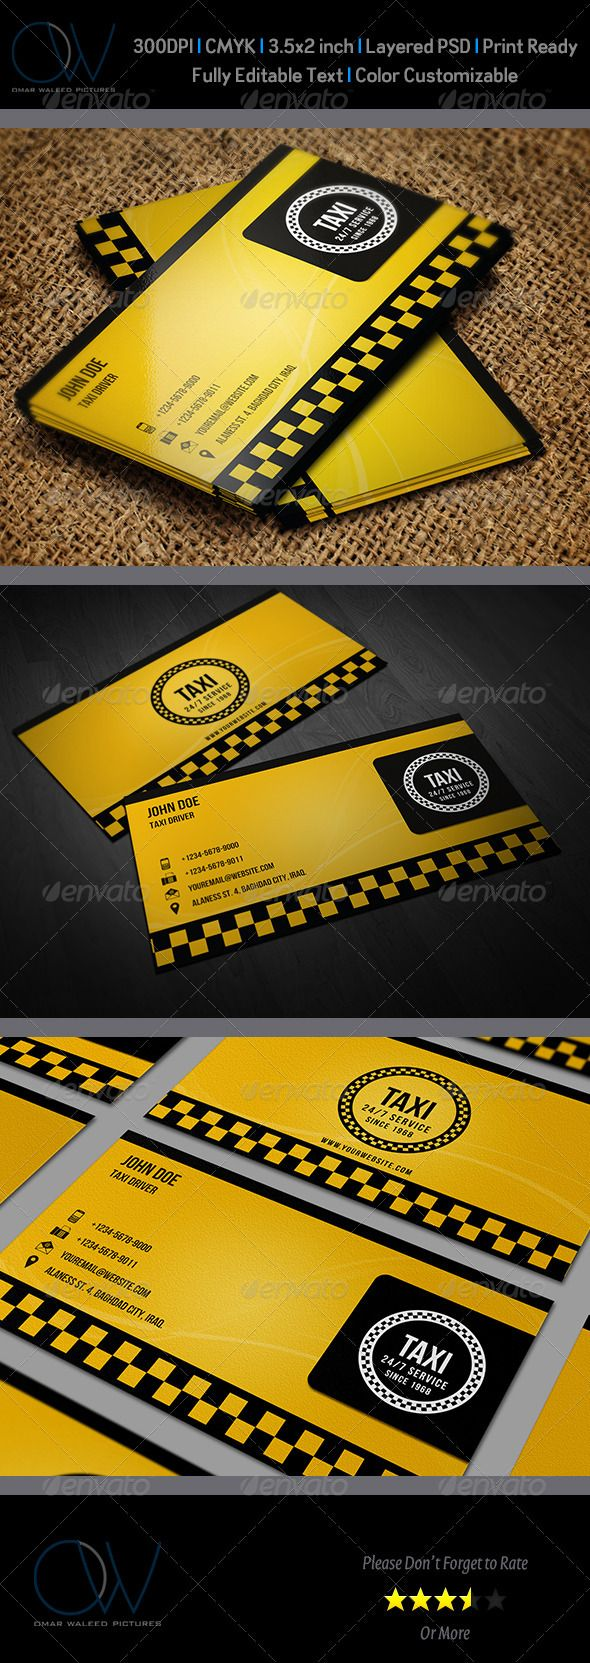 Taxi Business Card | Taxi, Business cards and Business